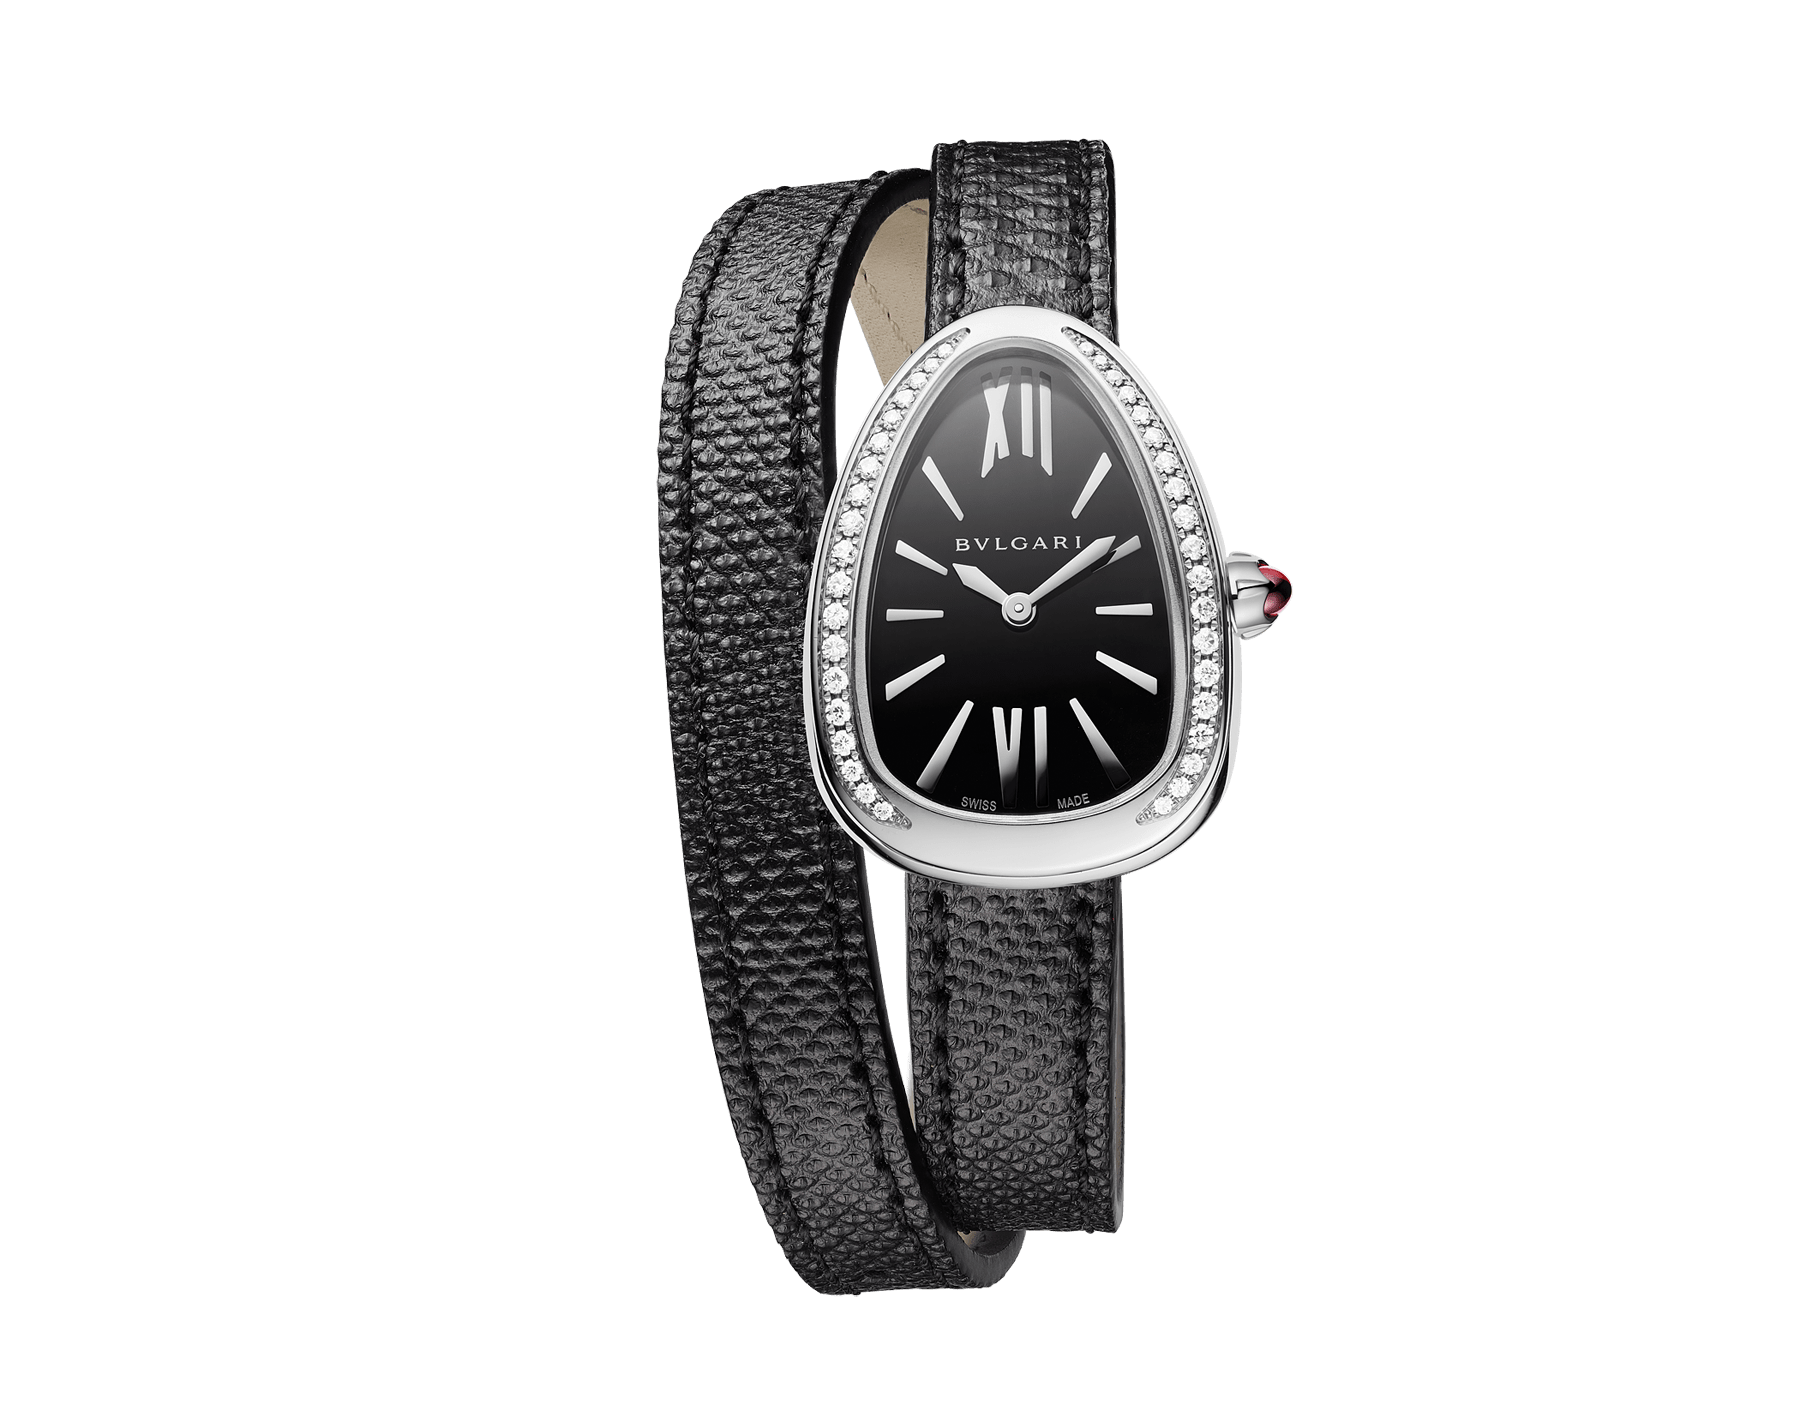 Serpenti watch with stainless steel case set with round brilliant-cut diamonds, black lacquered dial and interchangeable double spiral bracelet in black karung leather 102921 image 1